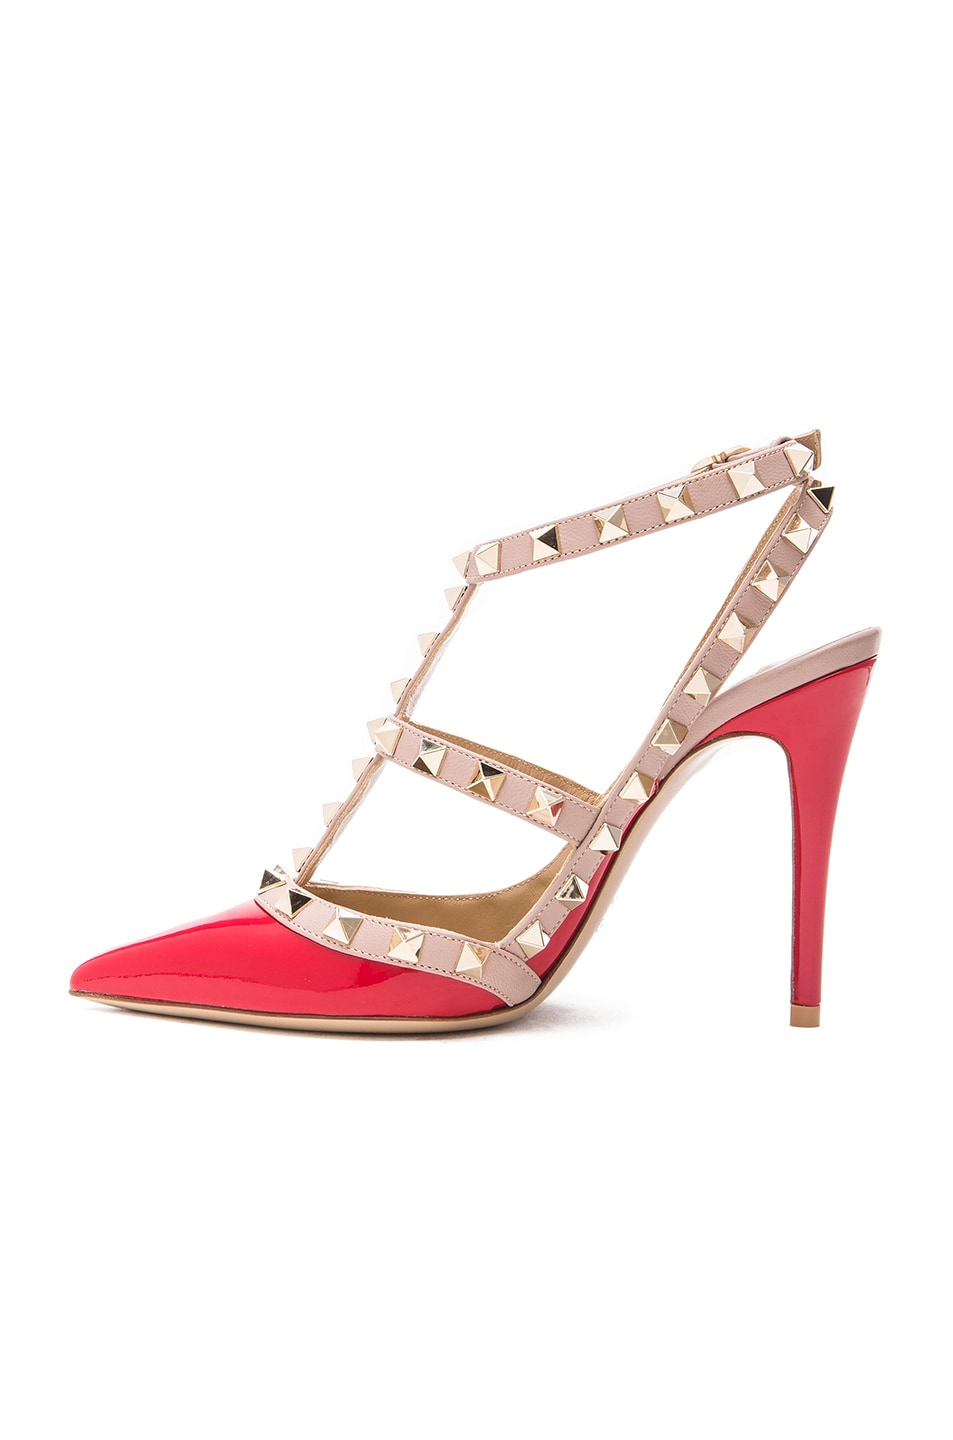 Image 5 of Valentino Rockstud Patent Leather Slingbacks T.100 in Rosso